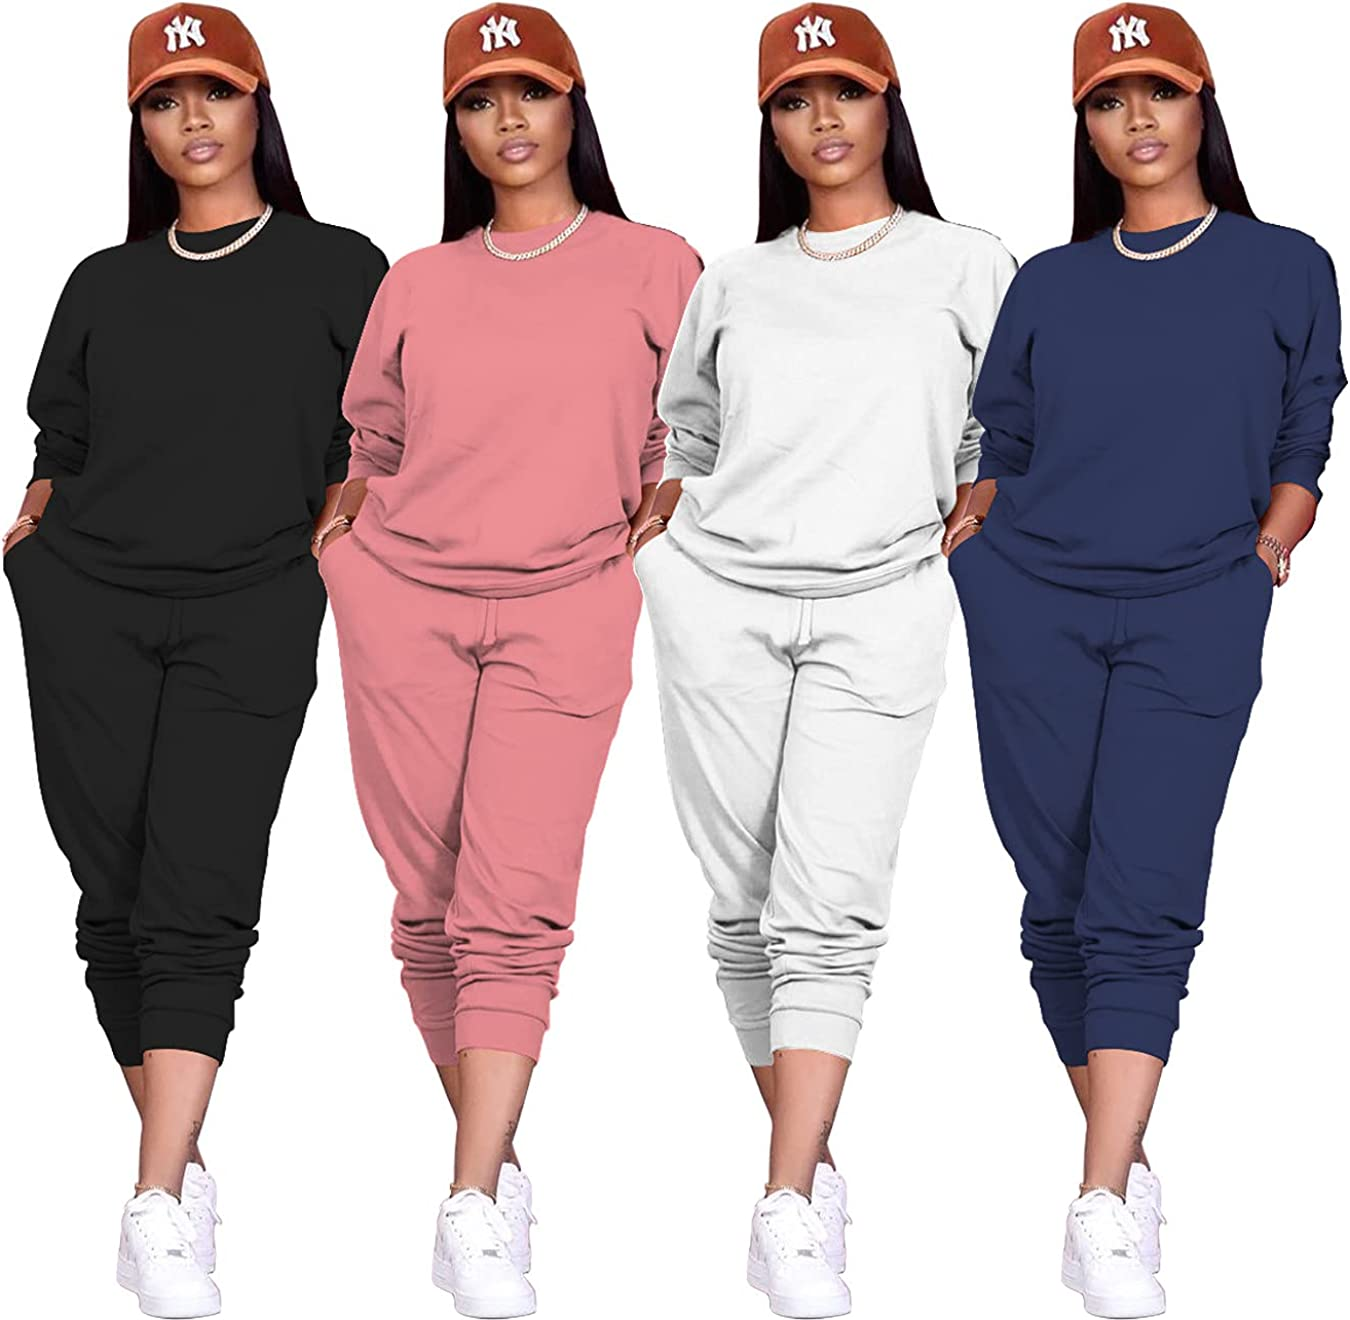 Spring and autumn women's cute sports and leisure suits sweater capless long-sleeved pencil pants solid color two-piece suit